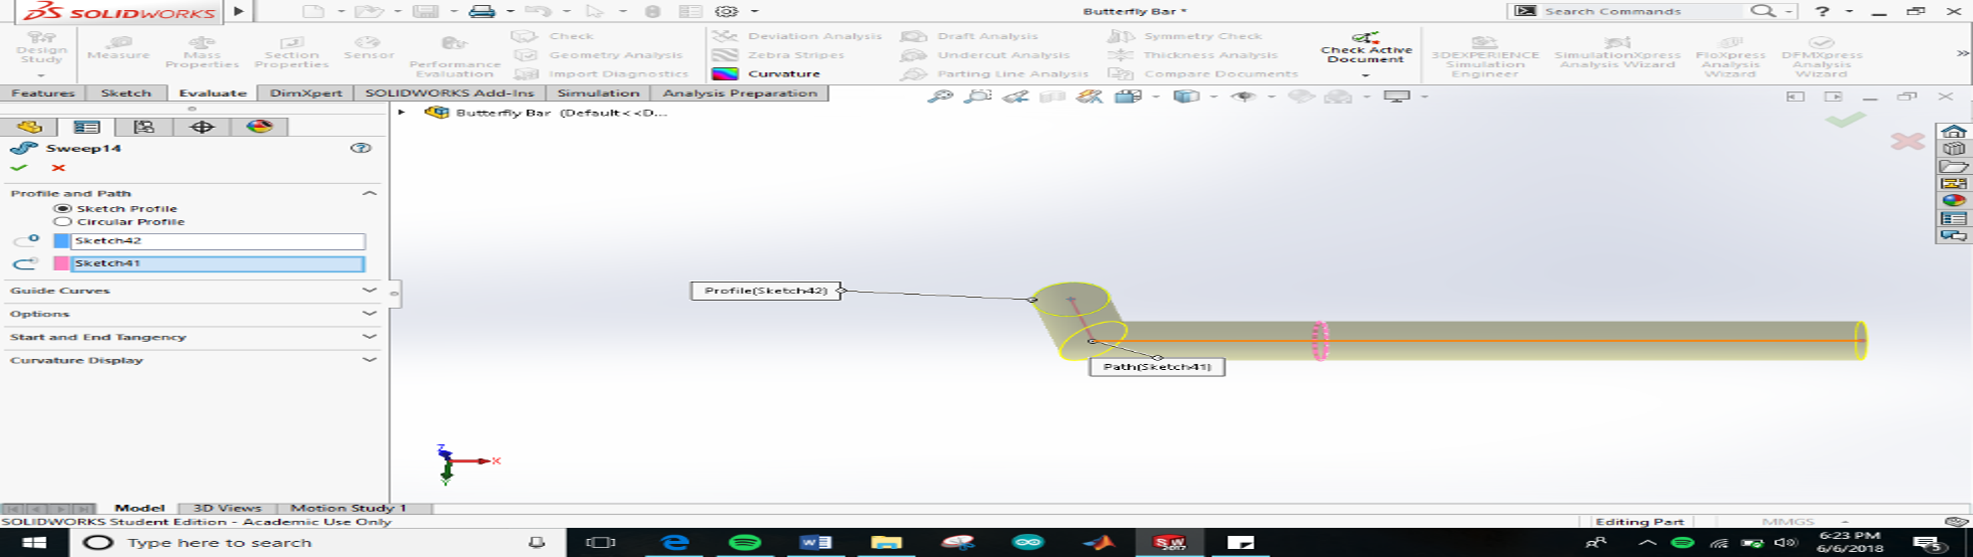 Picture of Designing the Butterfly Bar and Support System in Solidworks